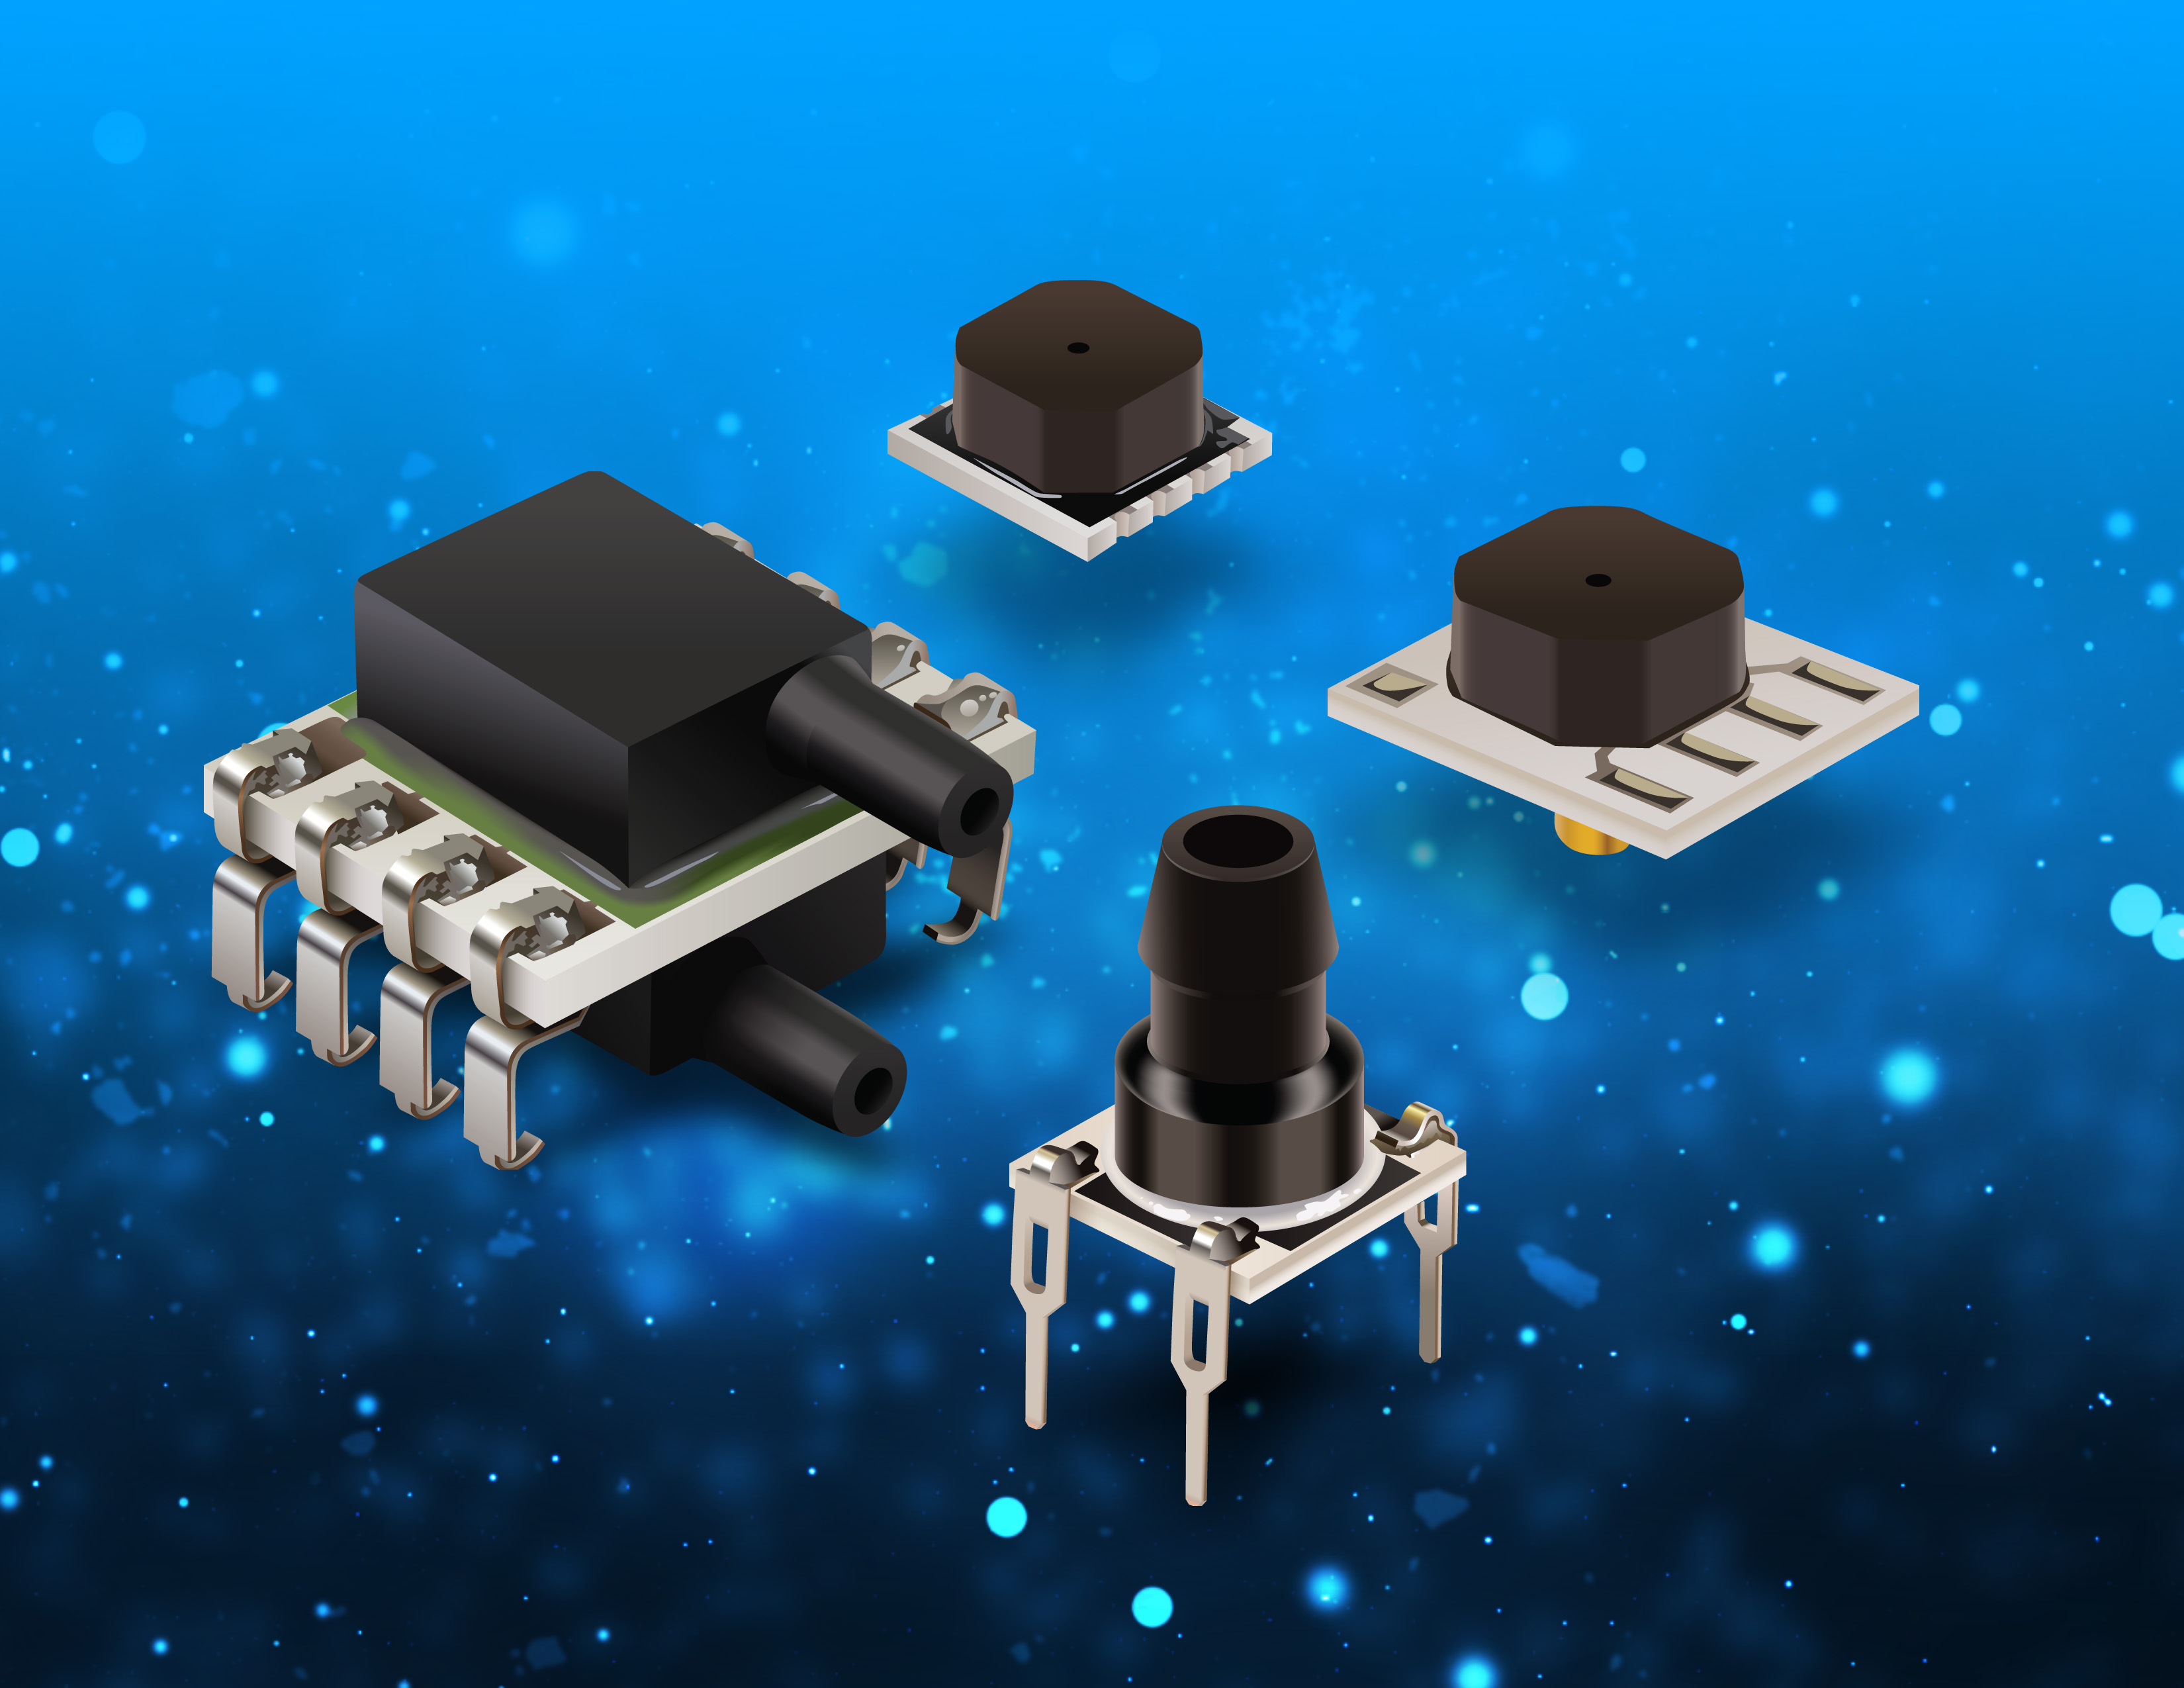 Bourns Adds Four New Pressure Sensor Model Families